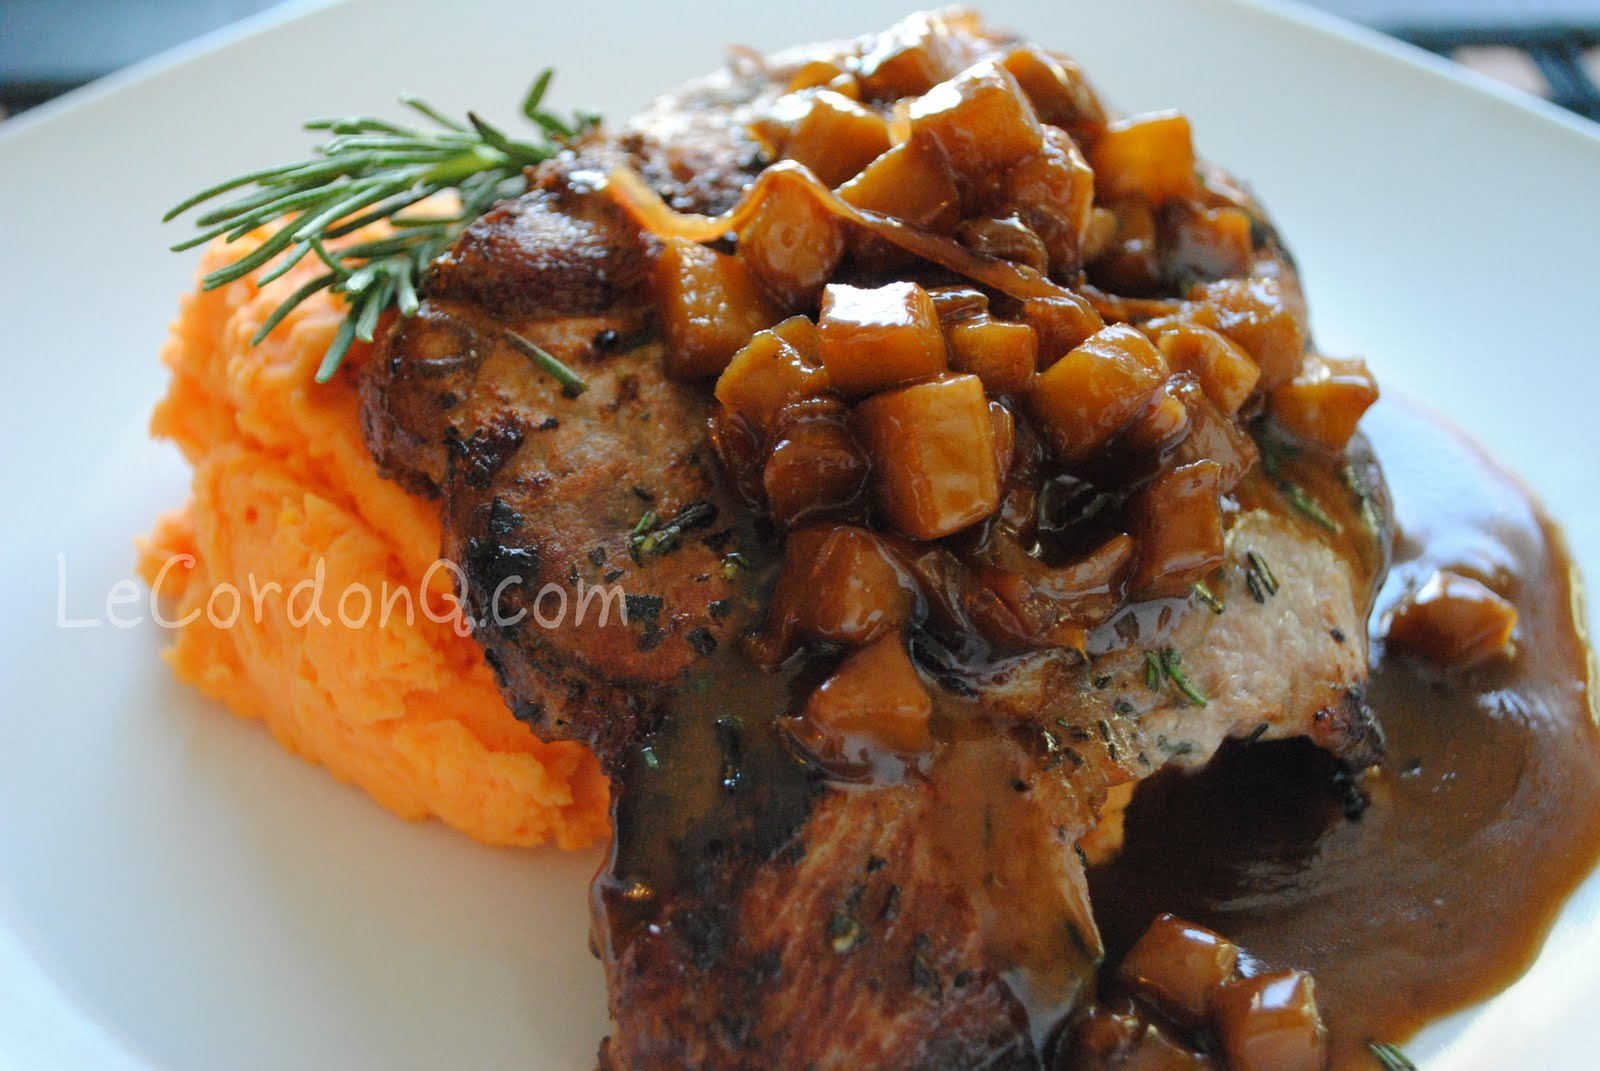 pork chop au poivre 2 pcs marinated pork chop chicken au poivre